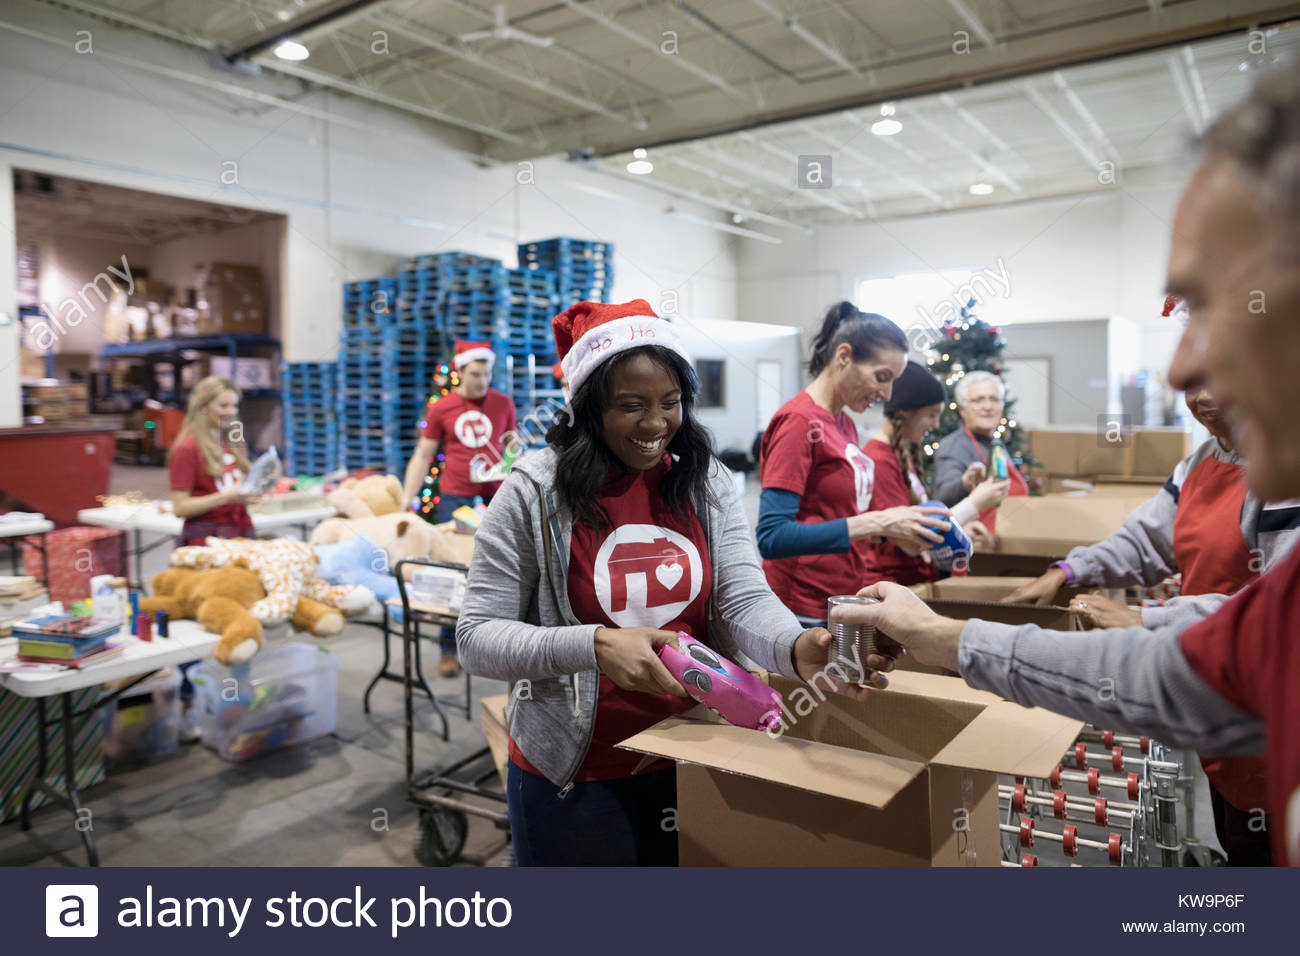 Female volunteer in Santa hat filling Christmas donation boxes in warehouse - Stock Image